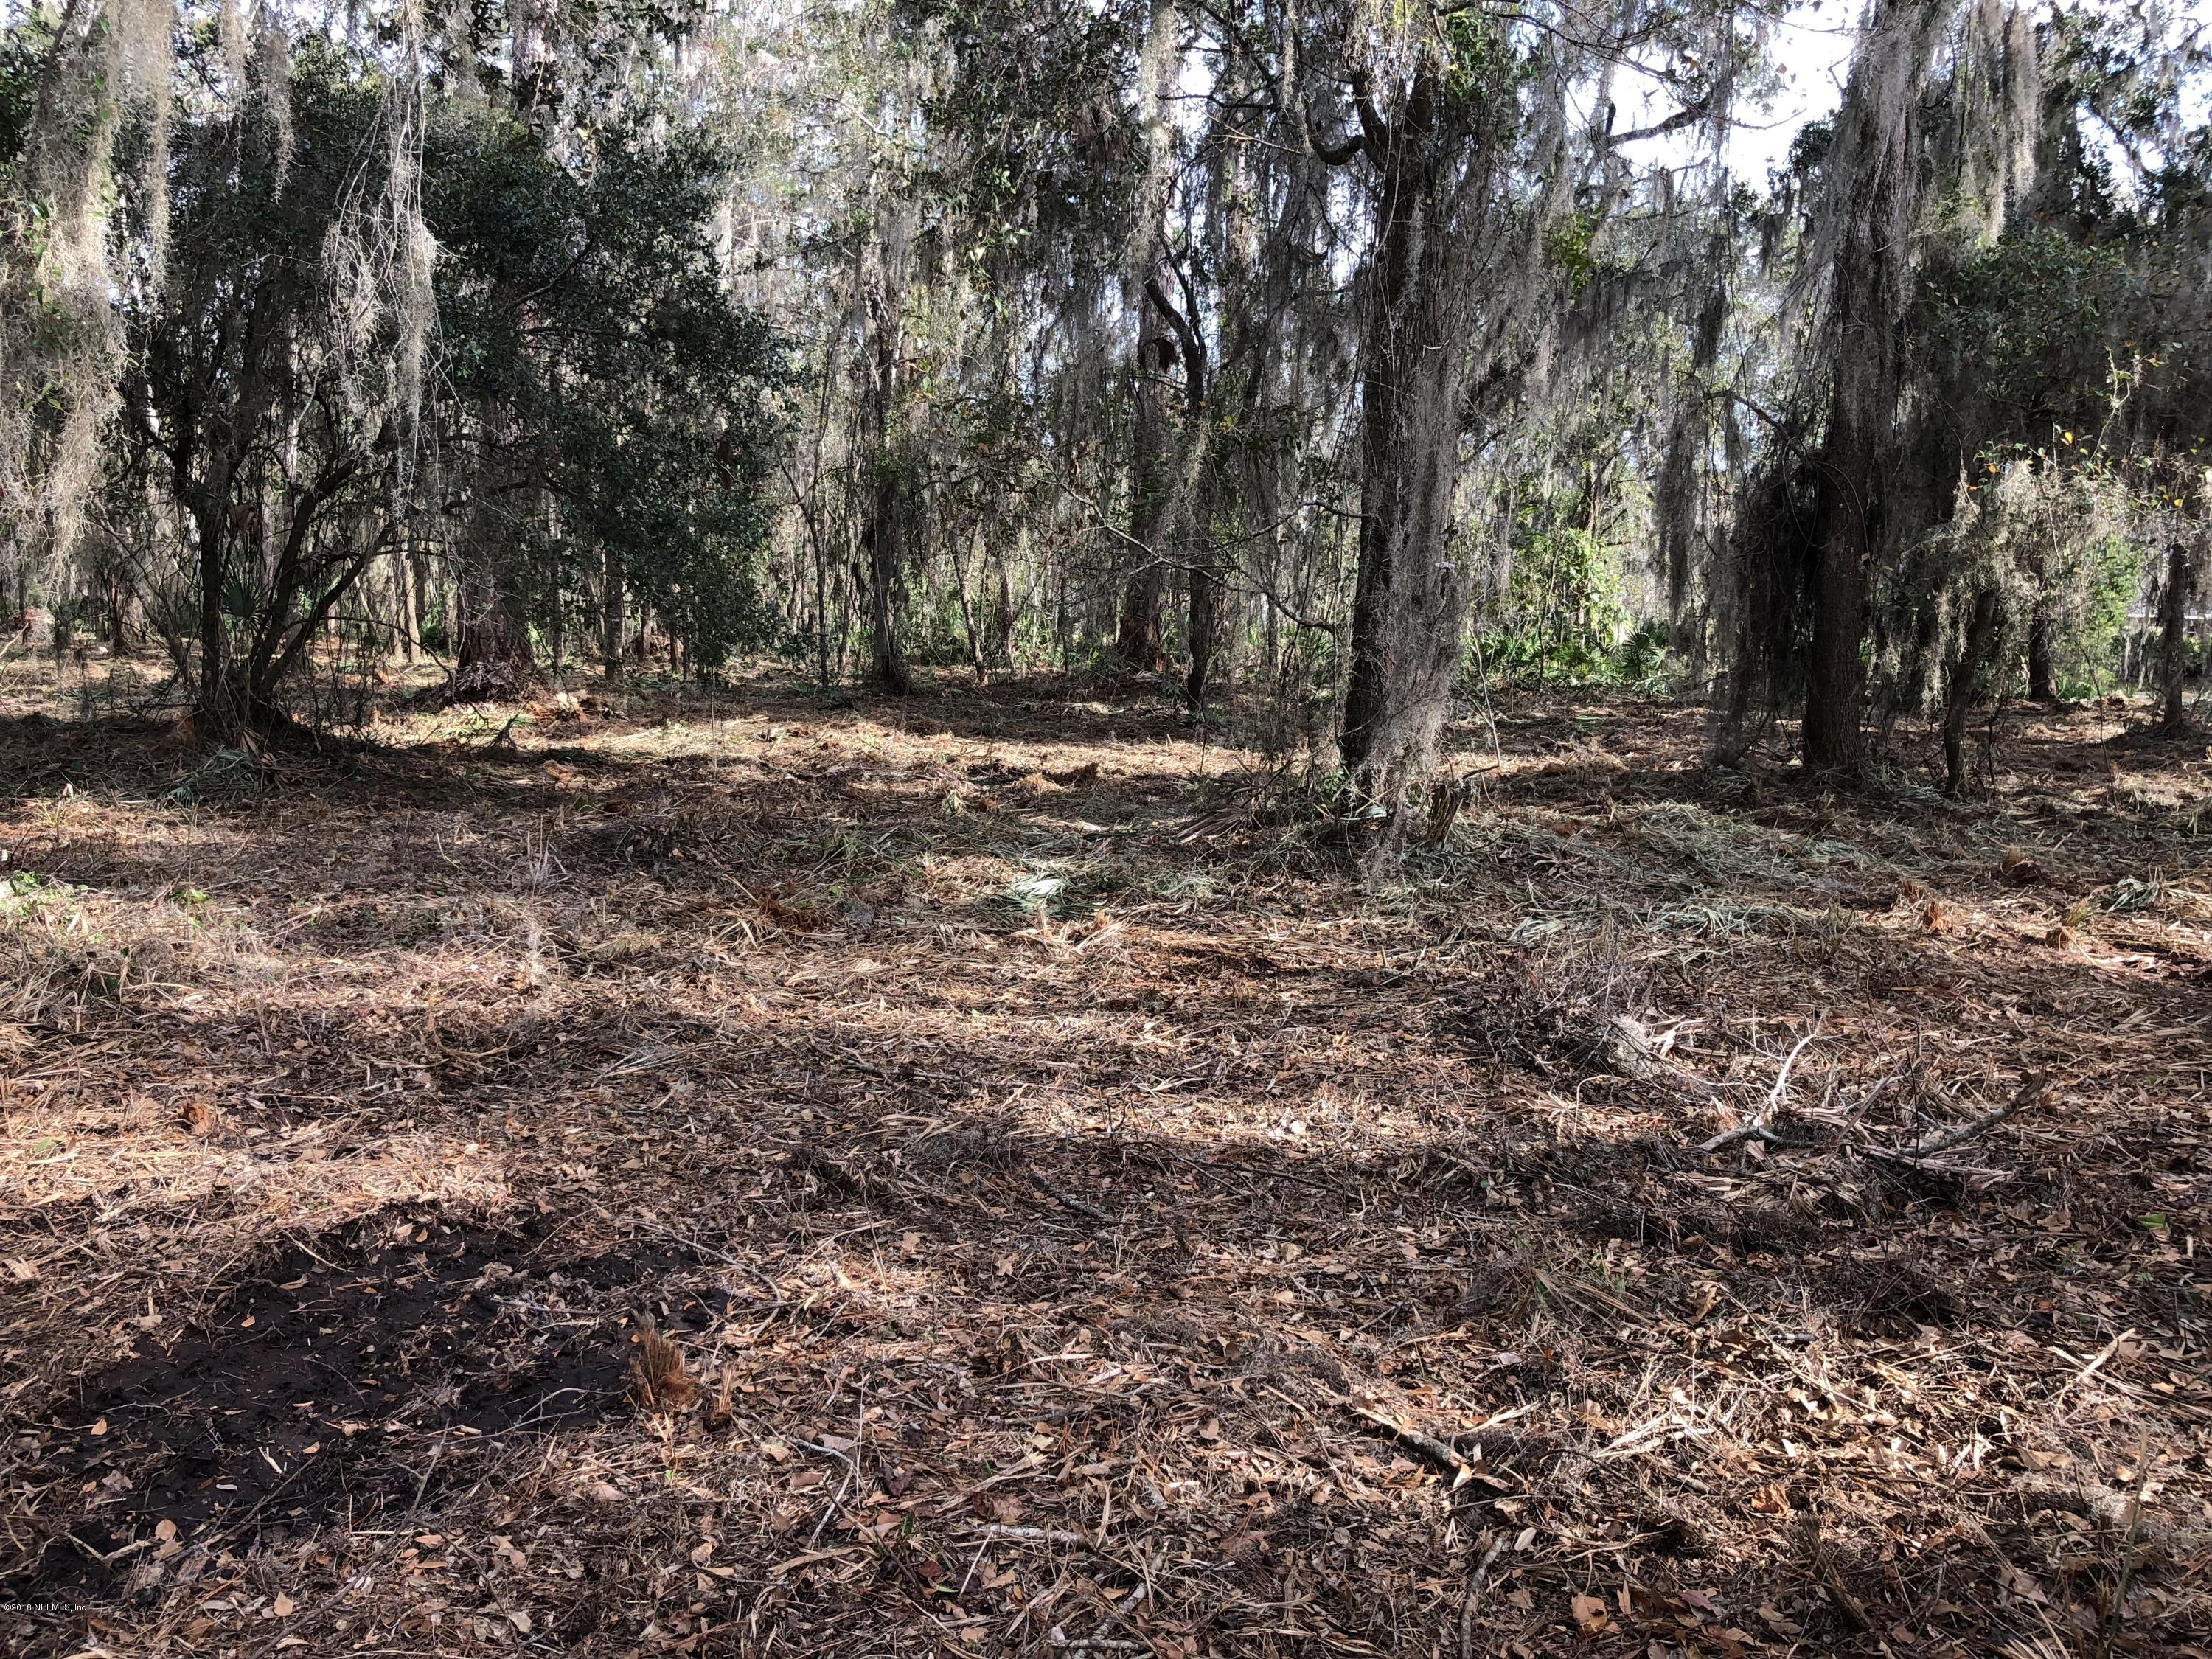 326 CEDAR CREEK, PALATKA, FLORIDA 32177, ,Vacant land,For sale,CEDAR CREEK,874890